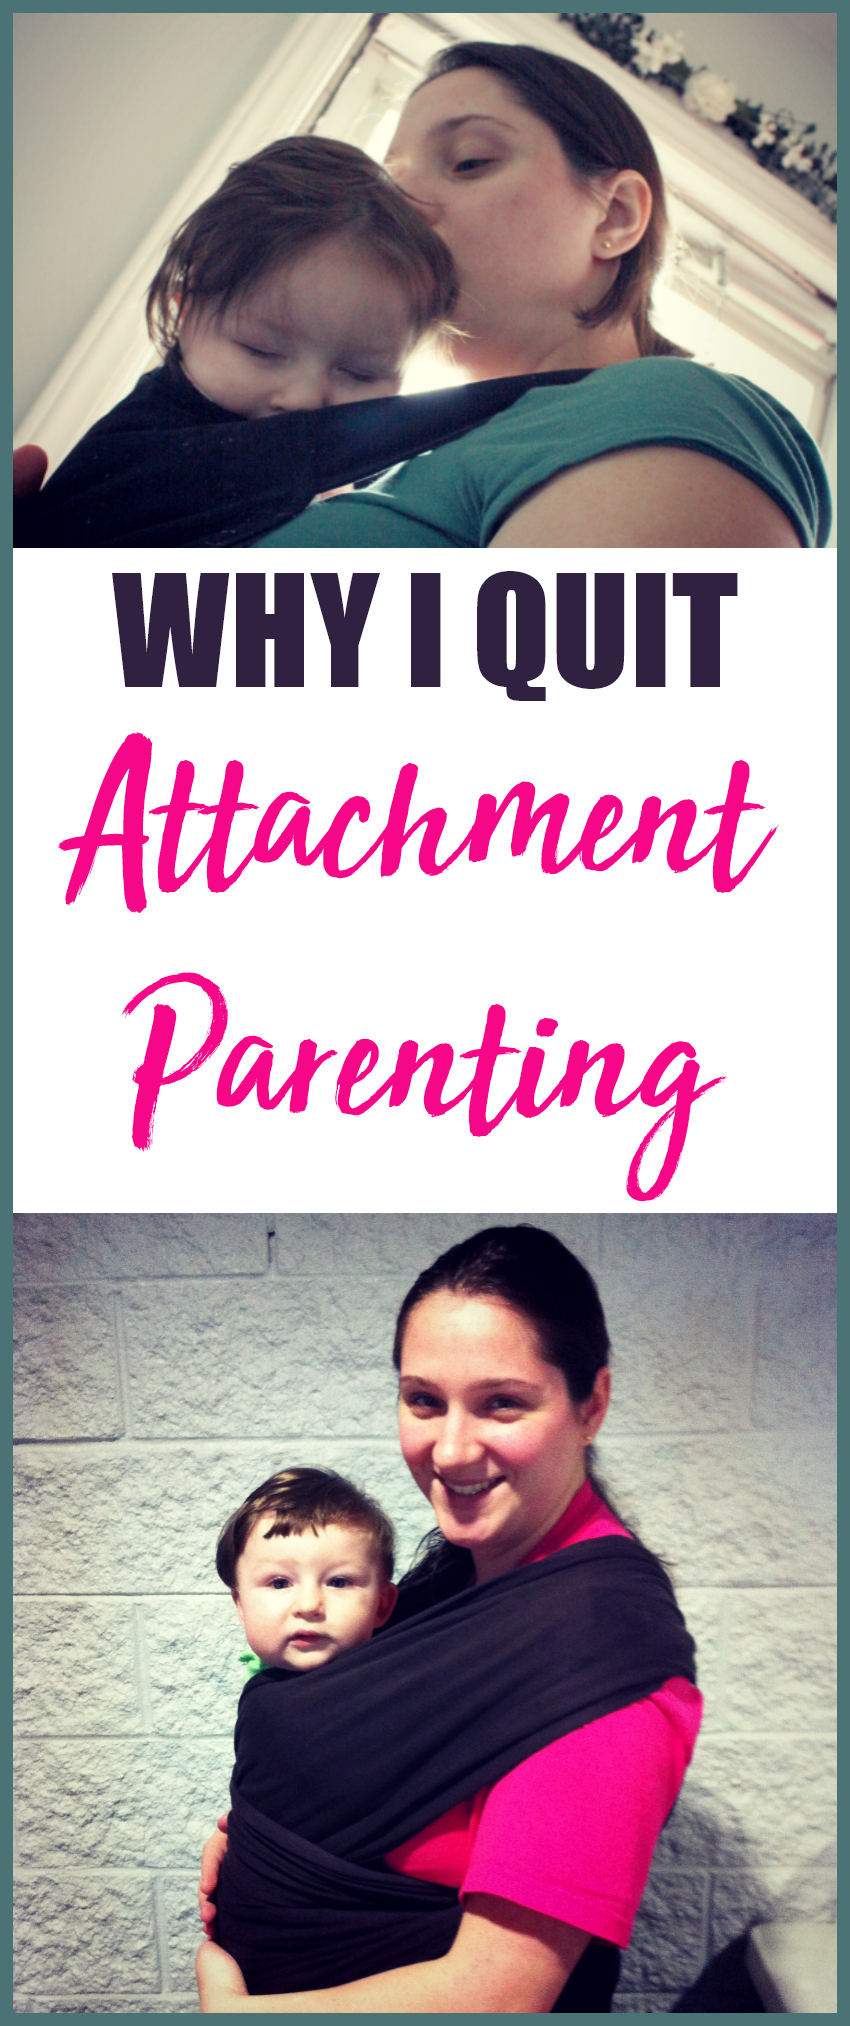 Attachment parenting dating site